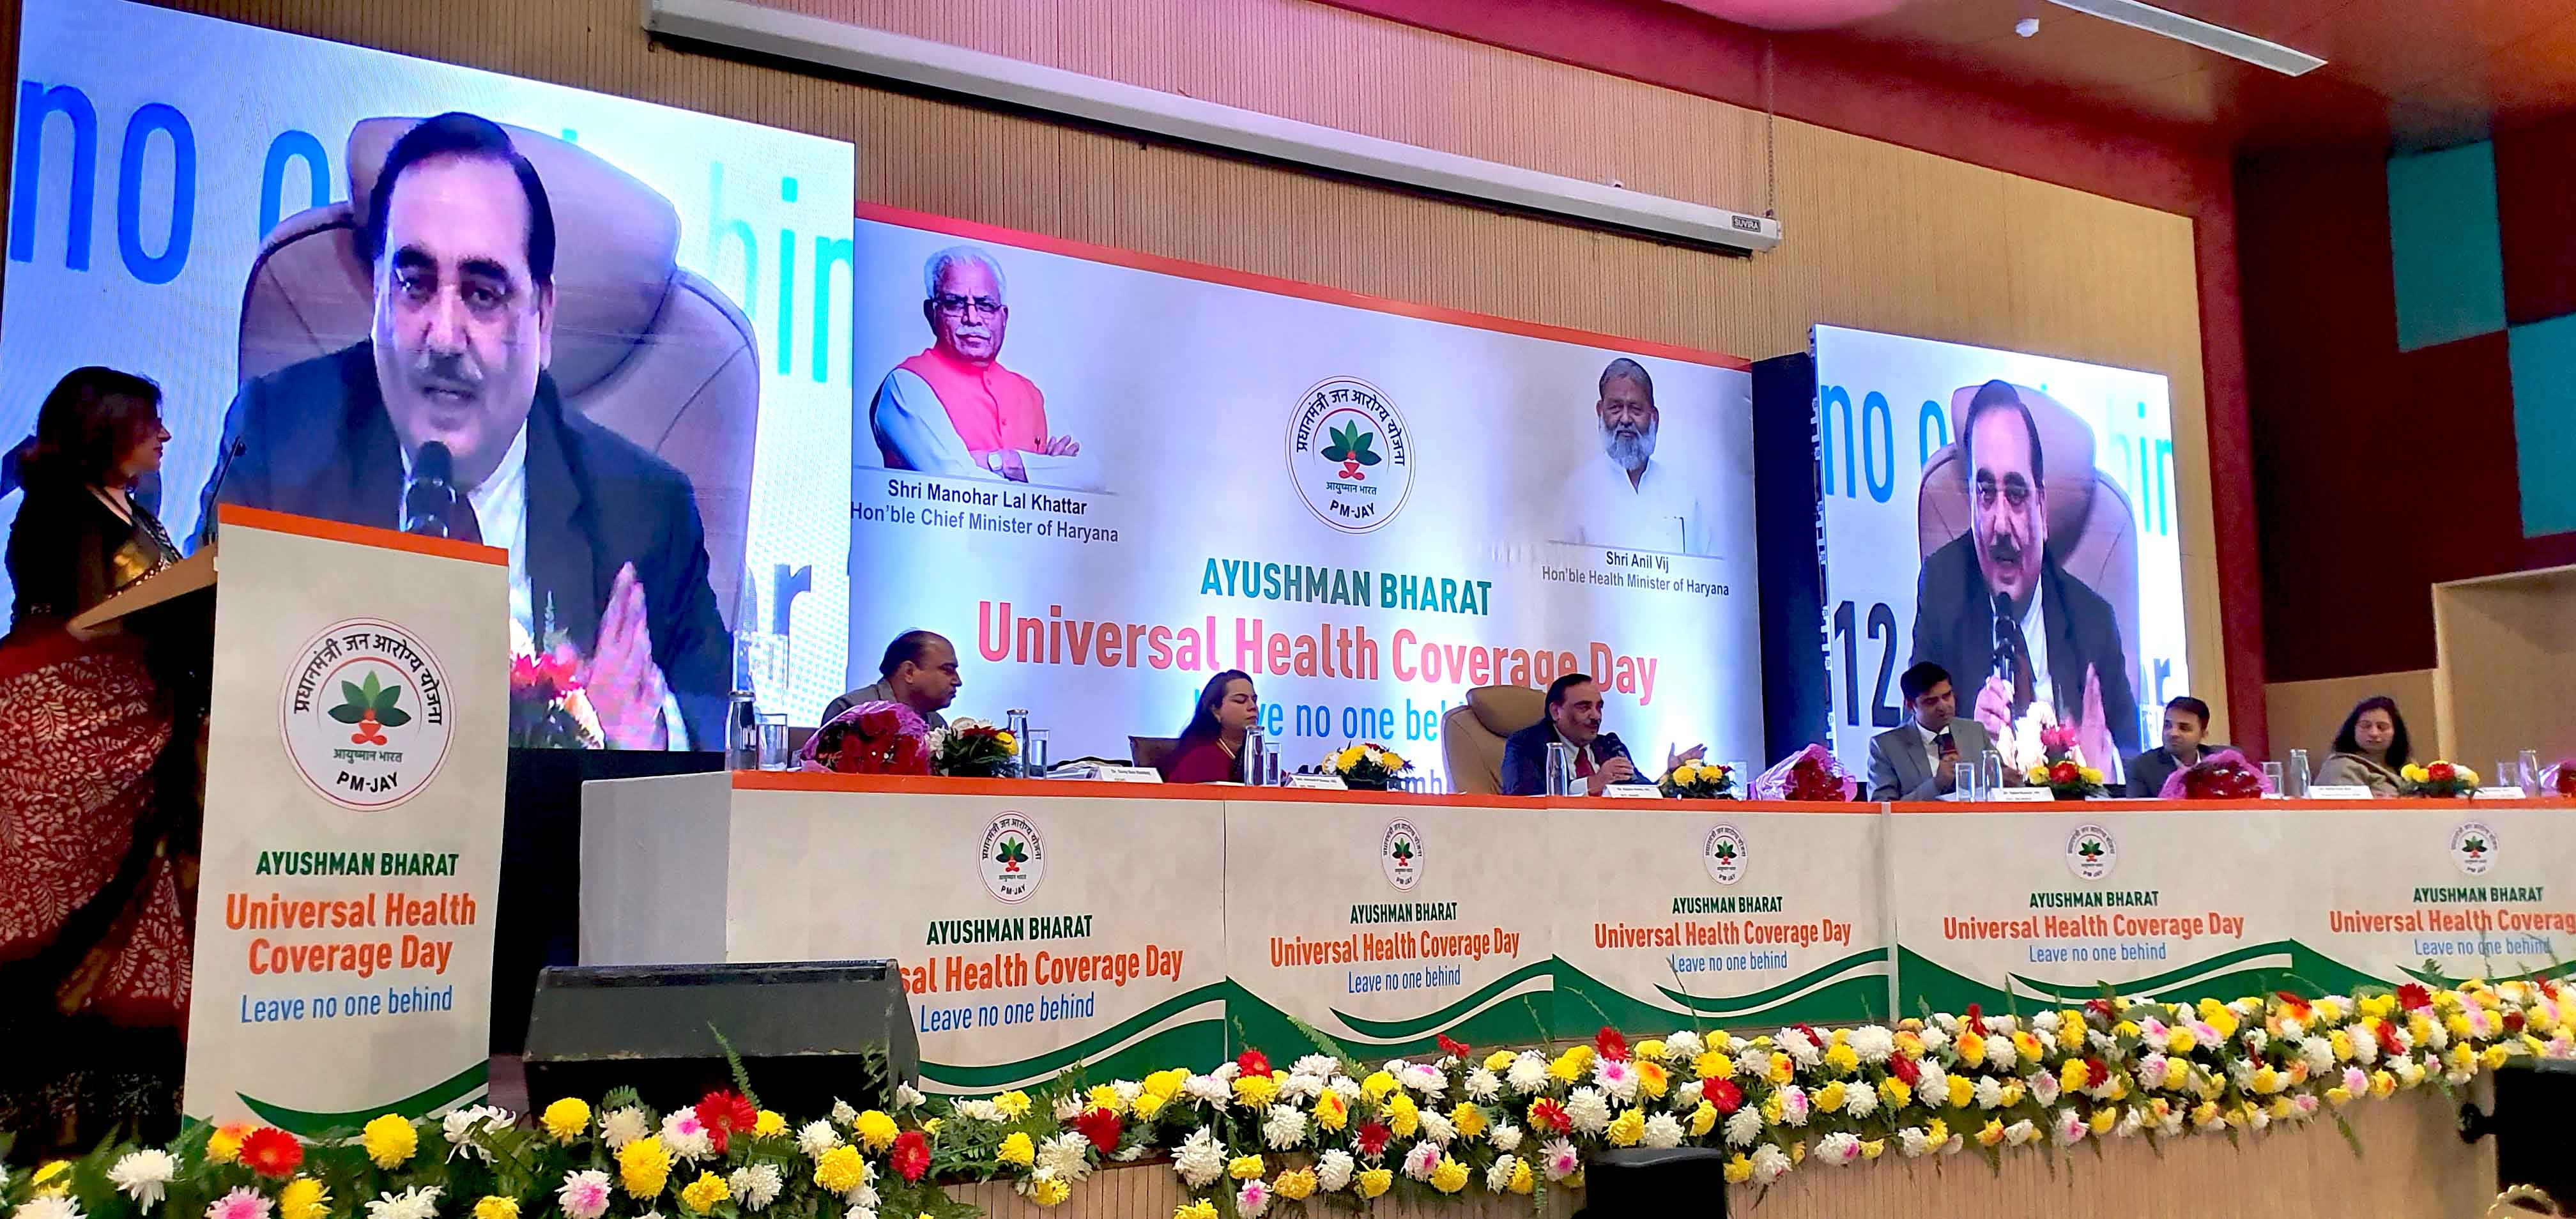 Ayushman Bharat, Universal Health Coverage Day 12.12.2019.